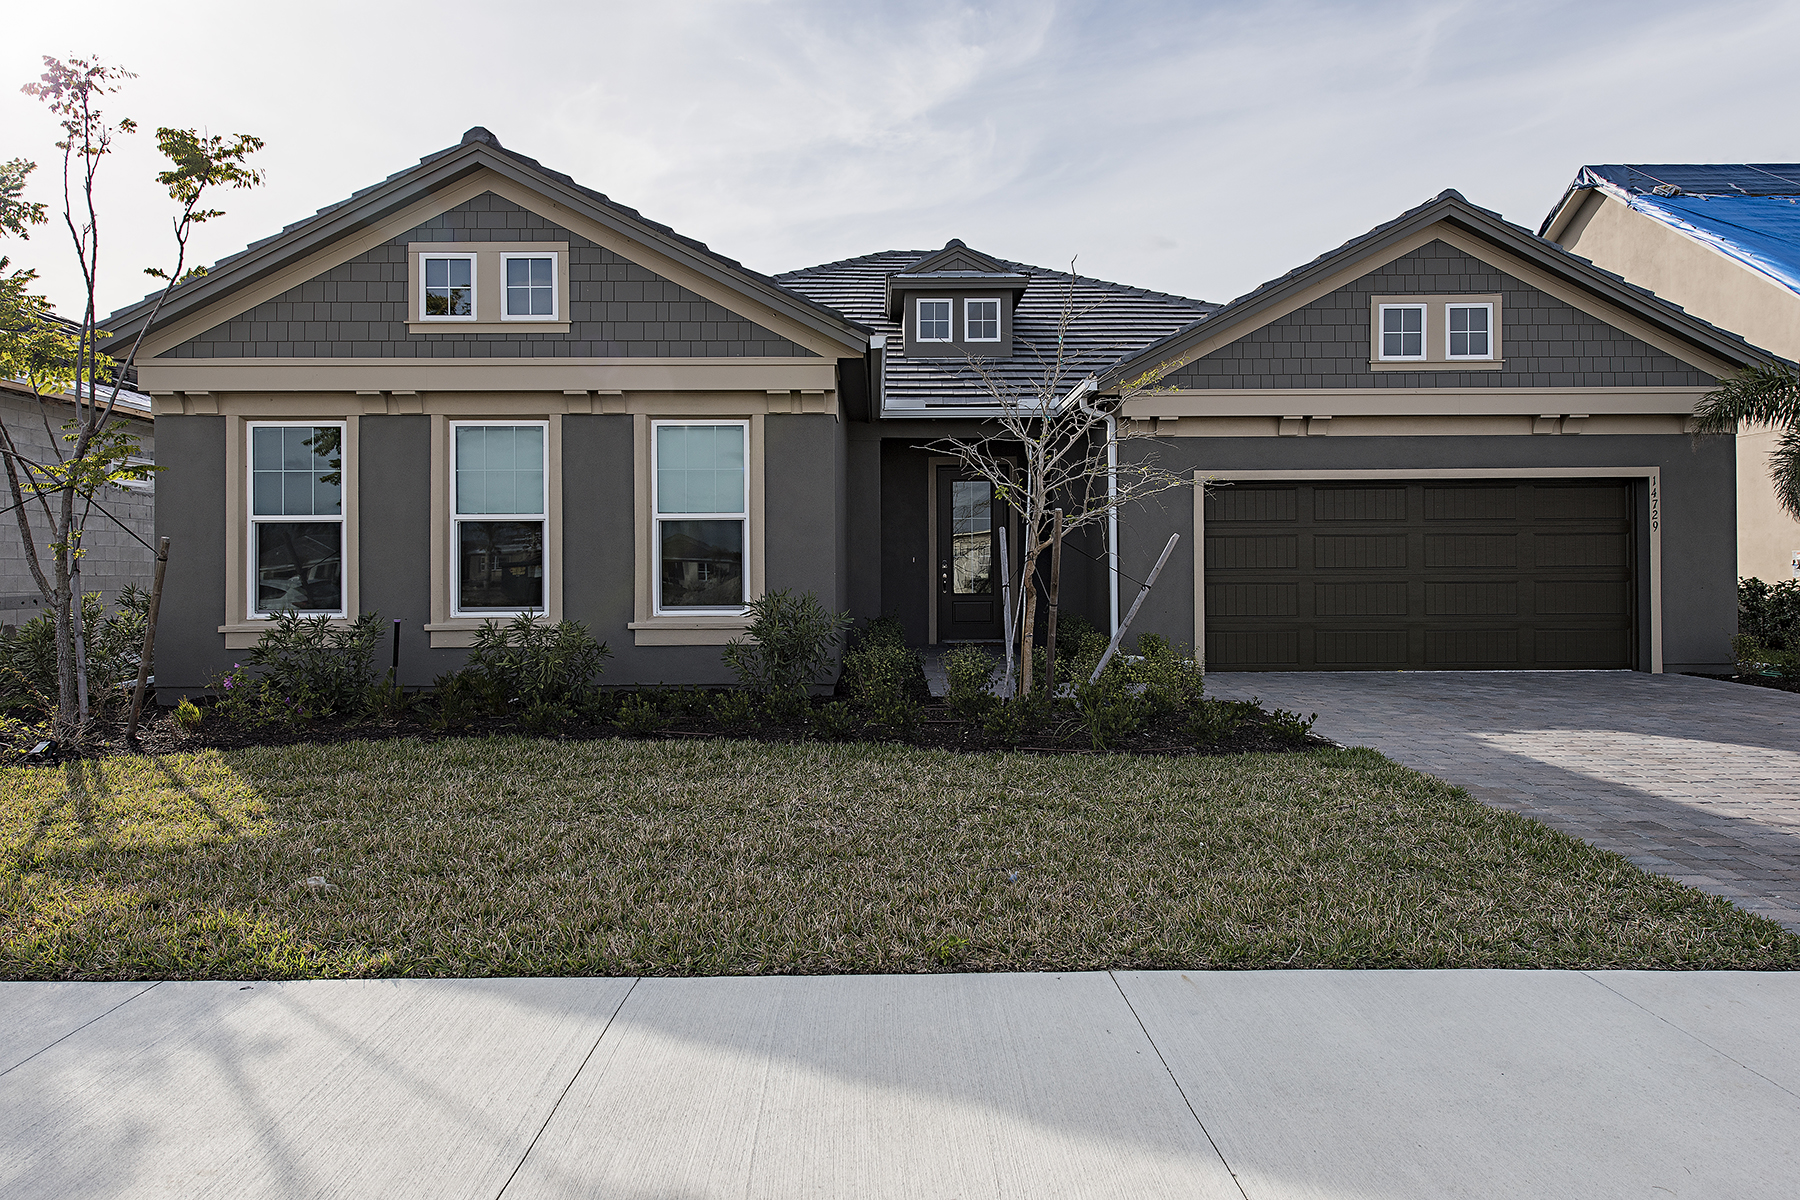 Single Family Home for Sale at NAPLES RESERVE 14729 Windward Ln, Naples, Florida 34114 United States